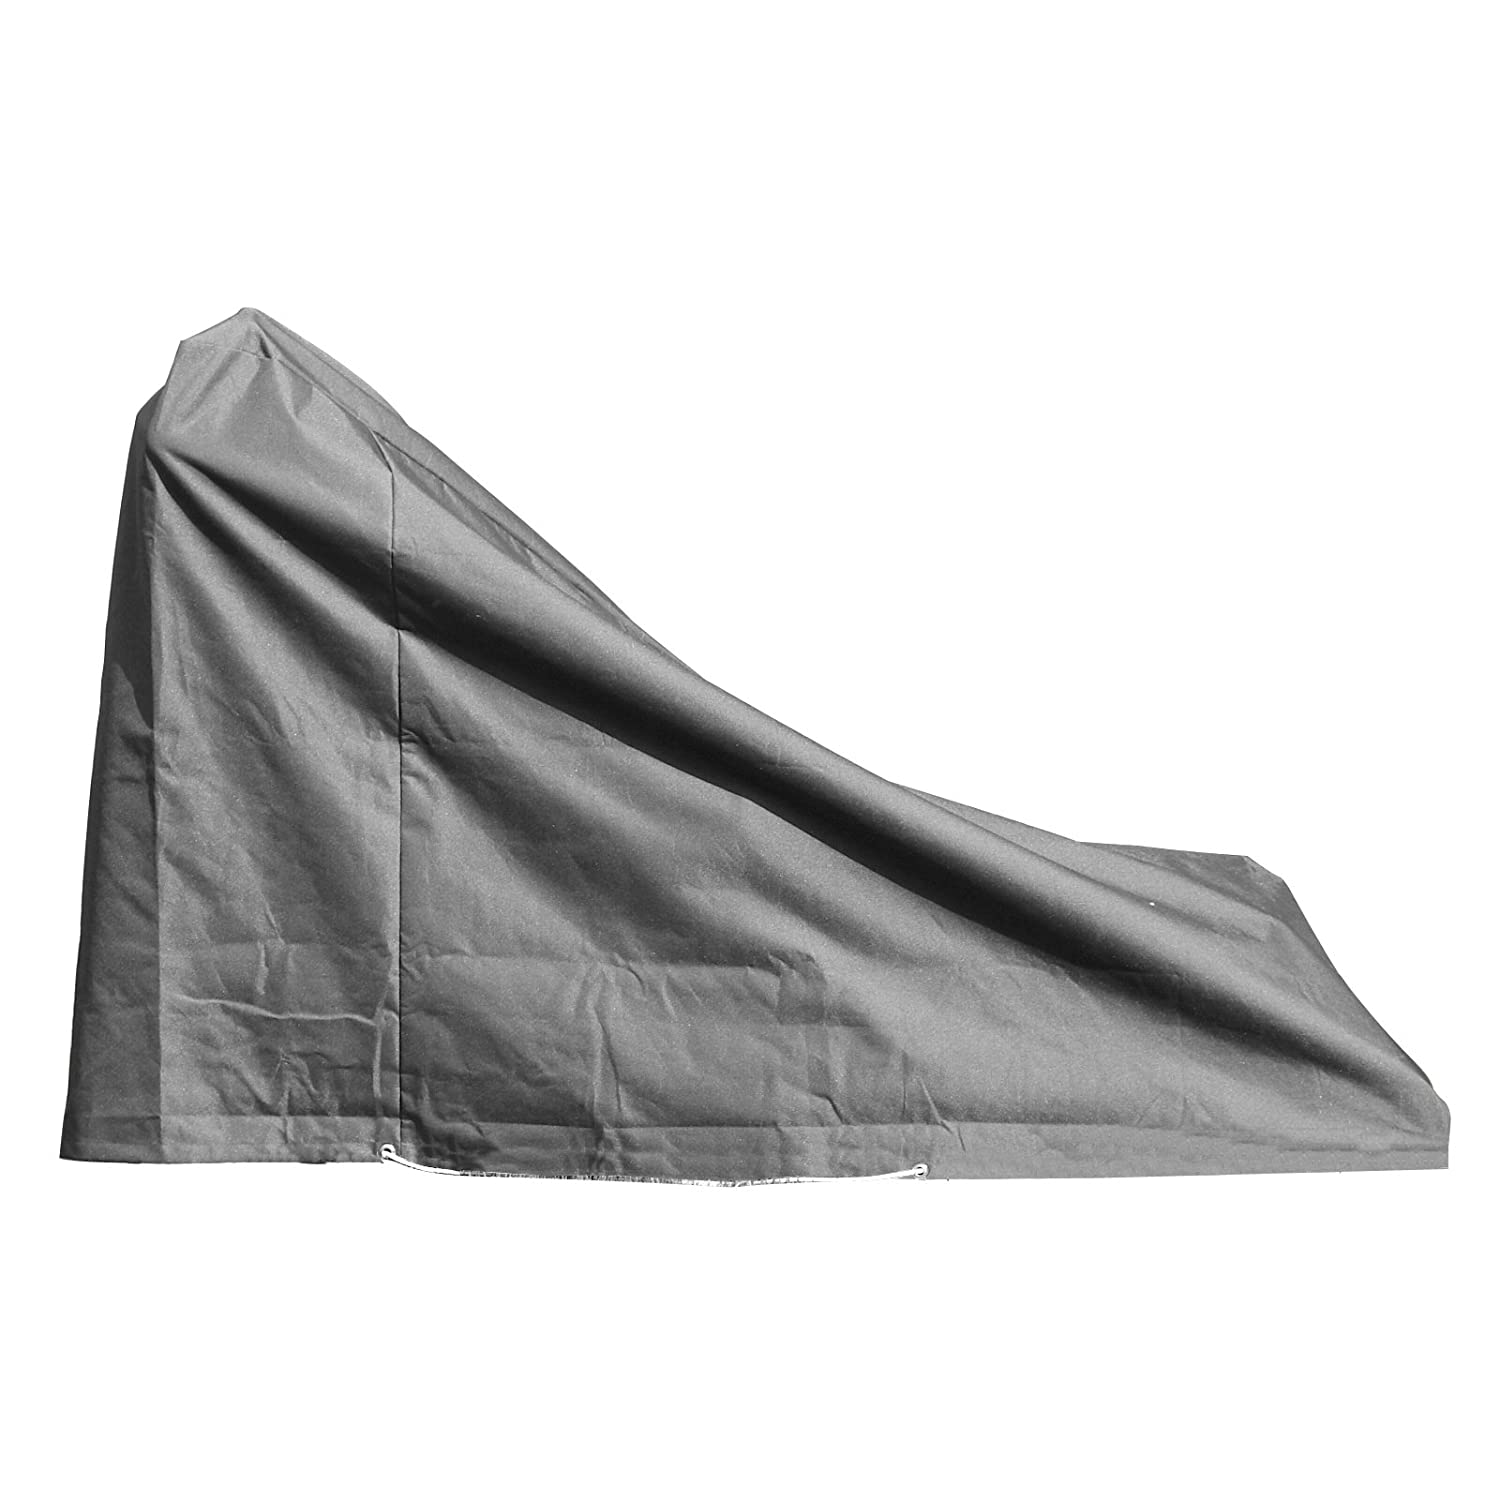 High Quality Protective Cover for Lawn Tractor and Mower 250 x L 130 x H 115 cm Polyester Anthracite Grey Quattro diffusion